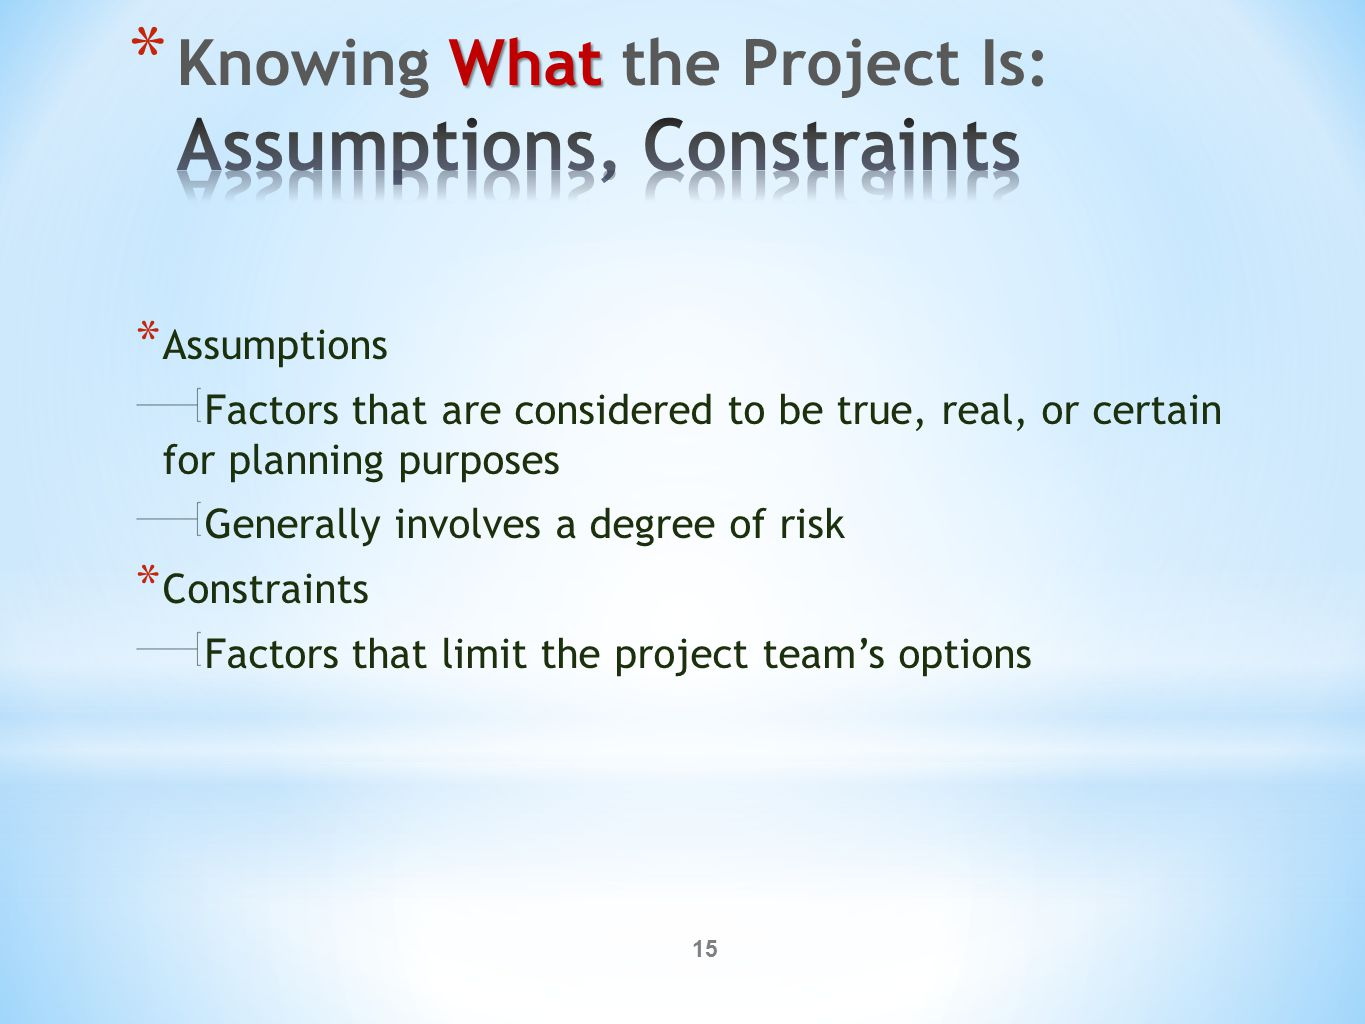 15 * Assumptions Factors that are considered to be true, real, or certain for planning purposes Generally involves a degree of risk * Constraints Factors that limit the project team's options